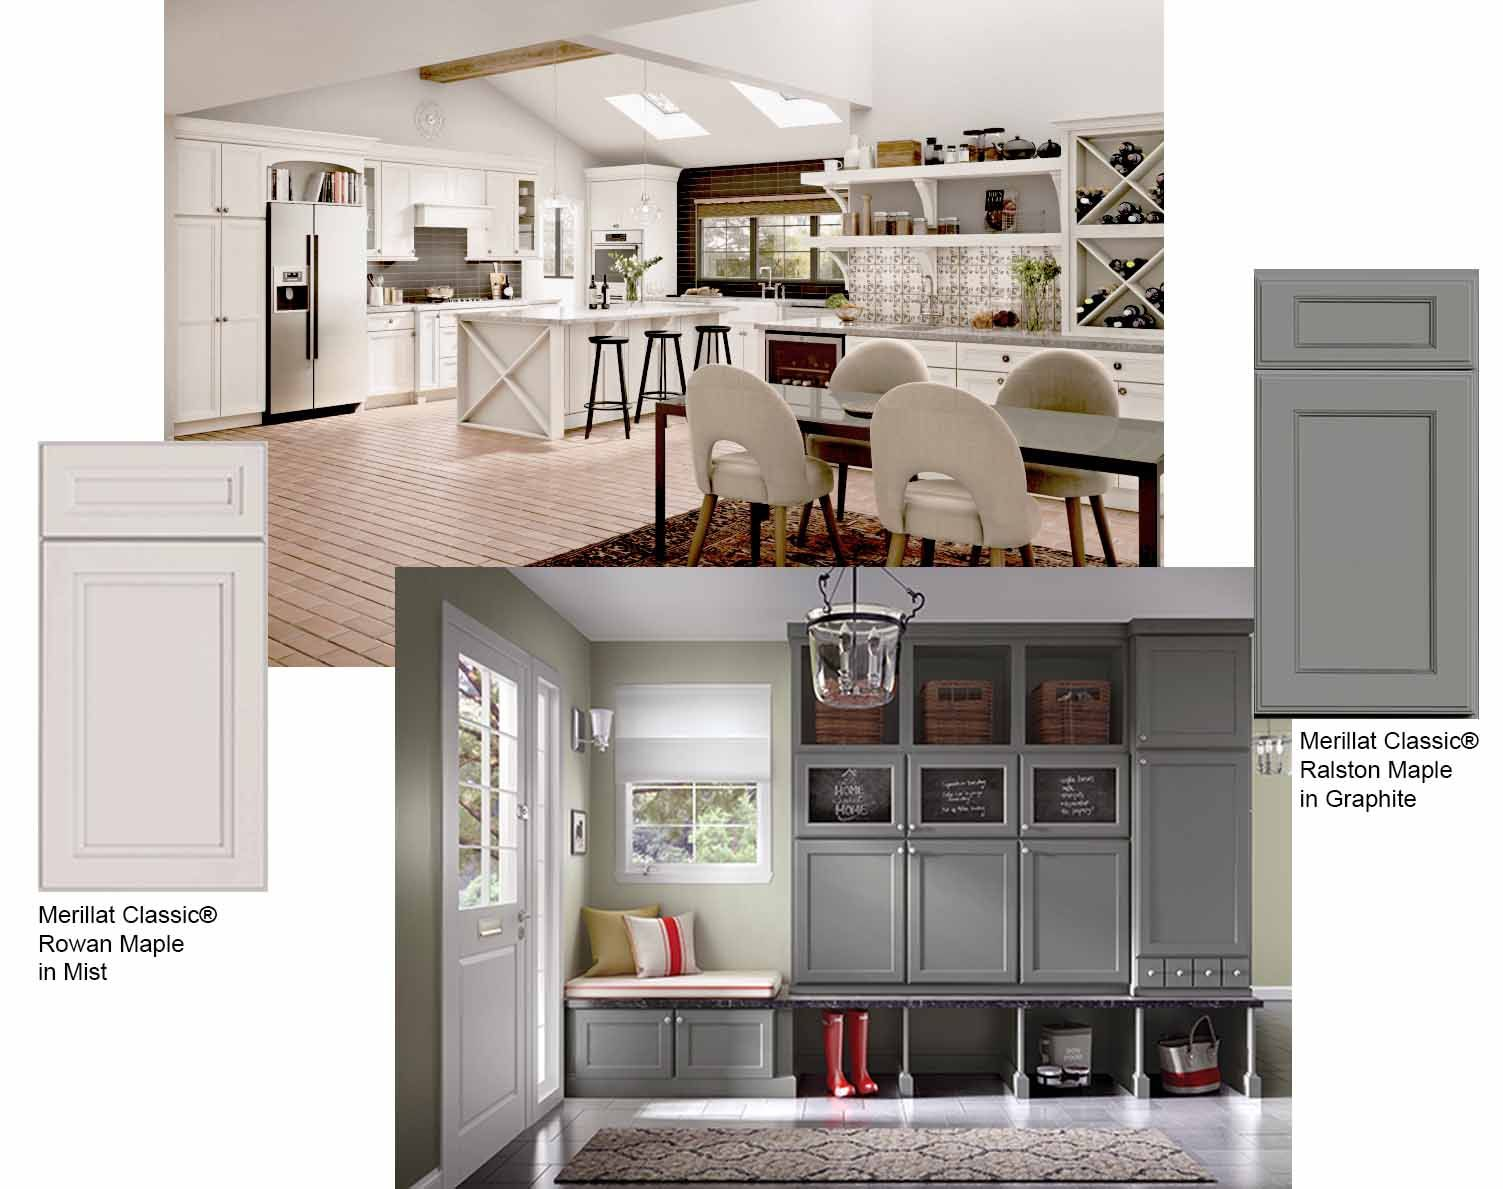 Merillat Classic Now Available In Two New And Sophisticated Finish Colors Mist And Graphite Elegant Merillat Kitchen Cabinets Merillat Cabinets Room Design